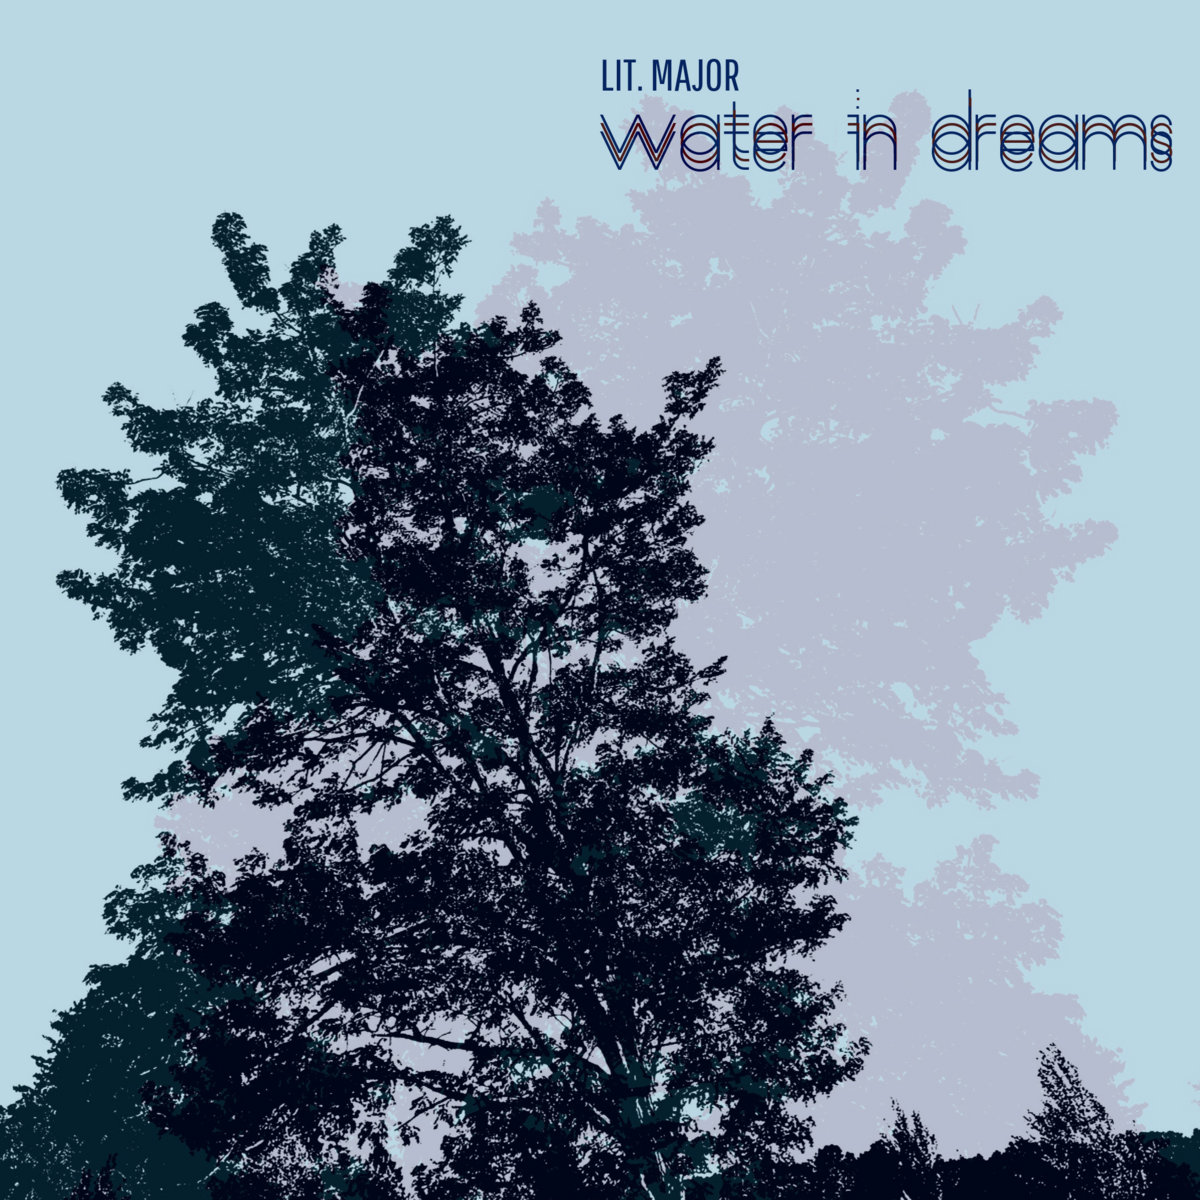 [KPR004] LIT. MAJOR - water in dreams